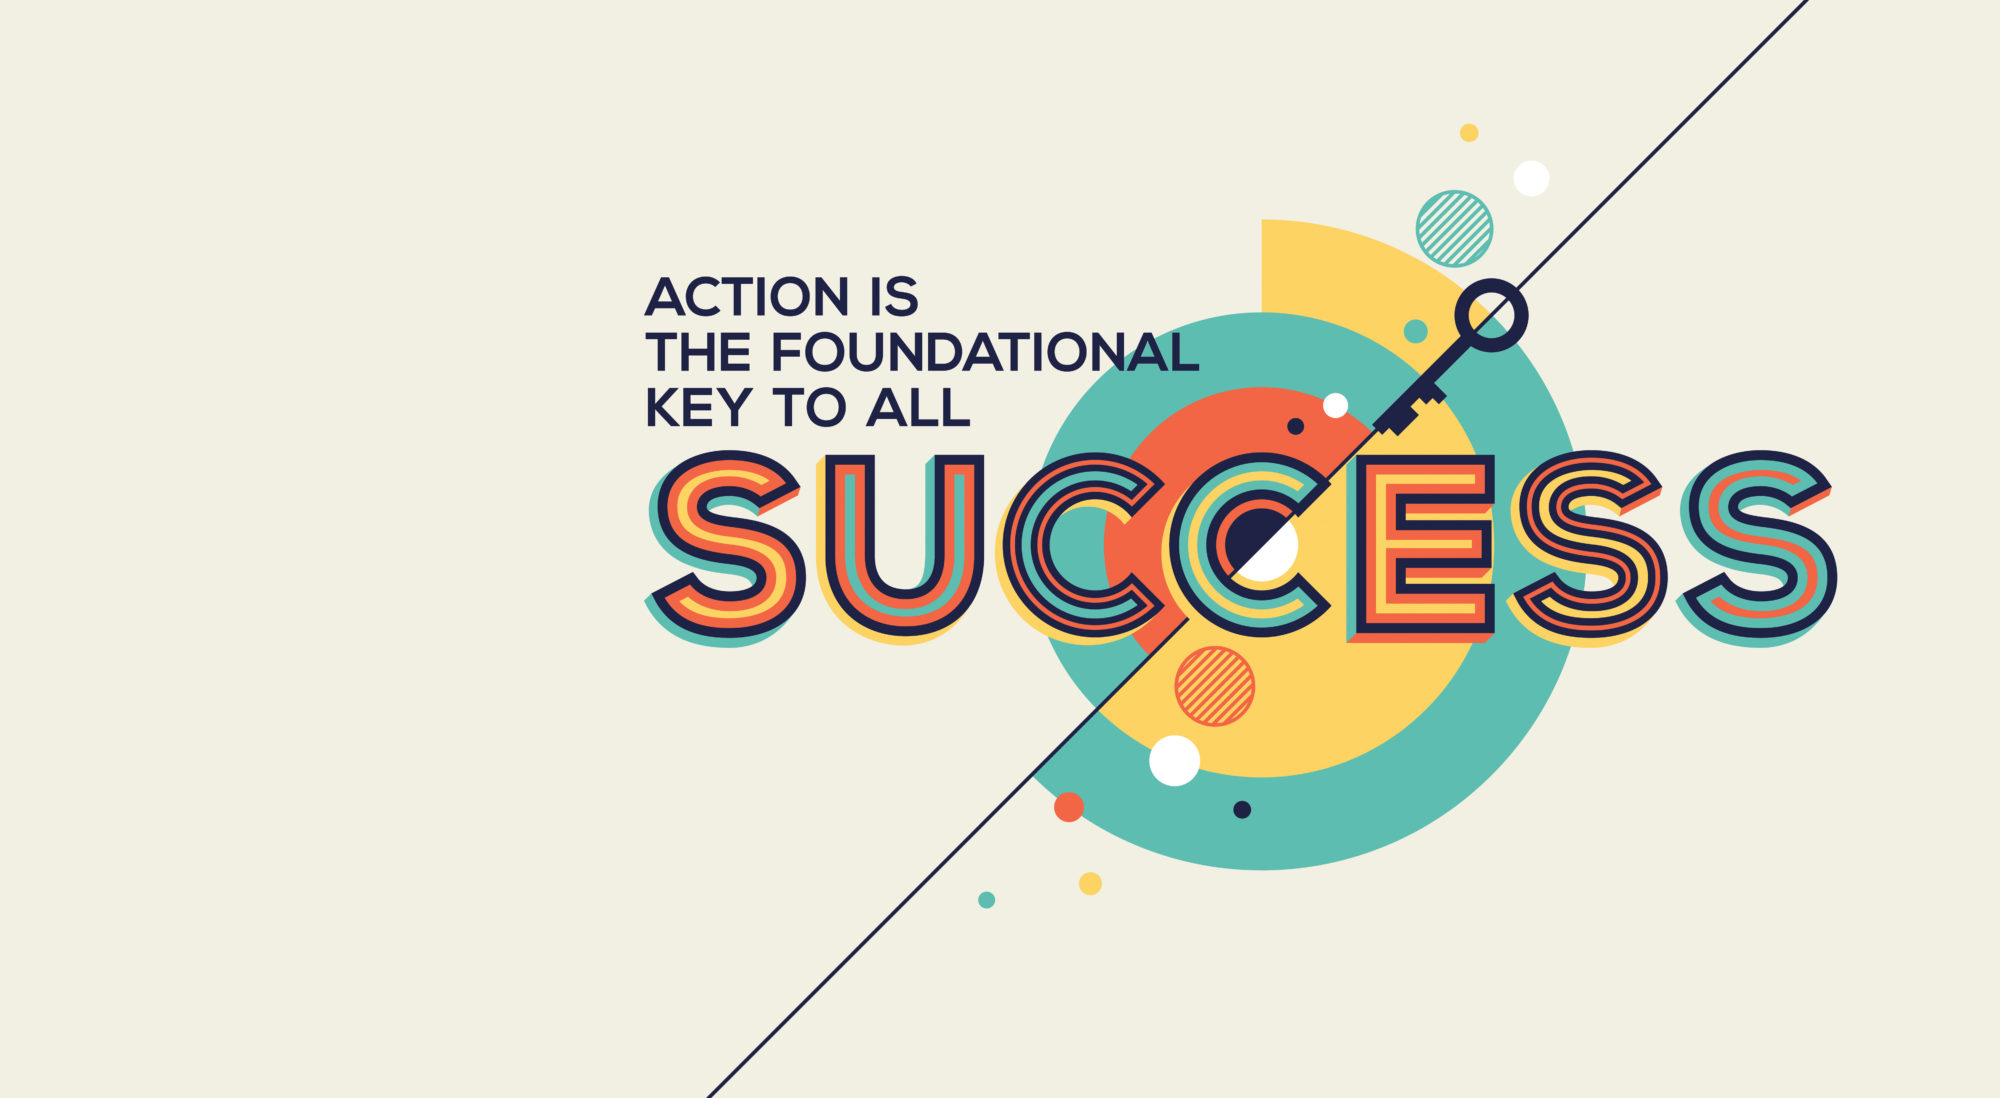 Success quote in geometric style